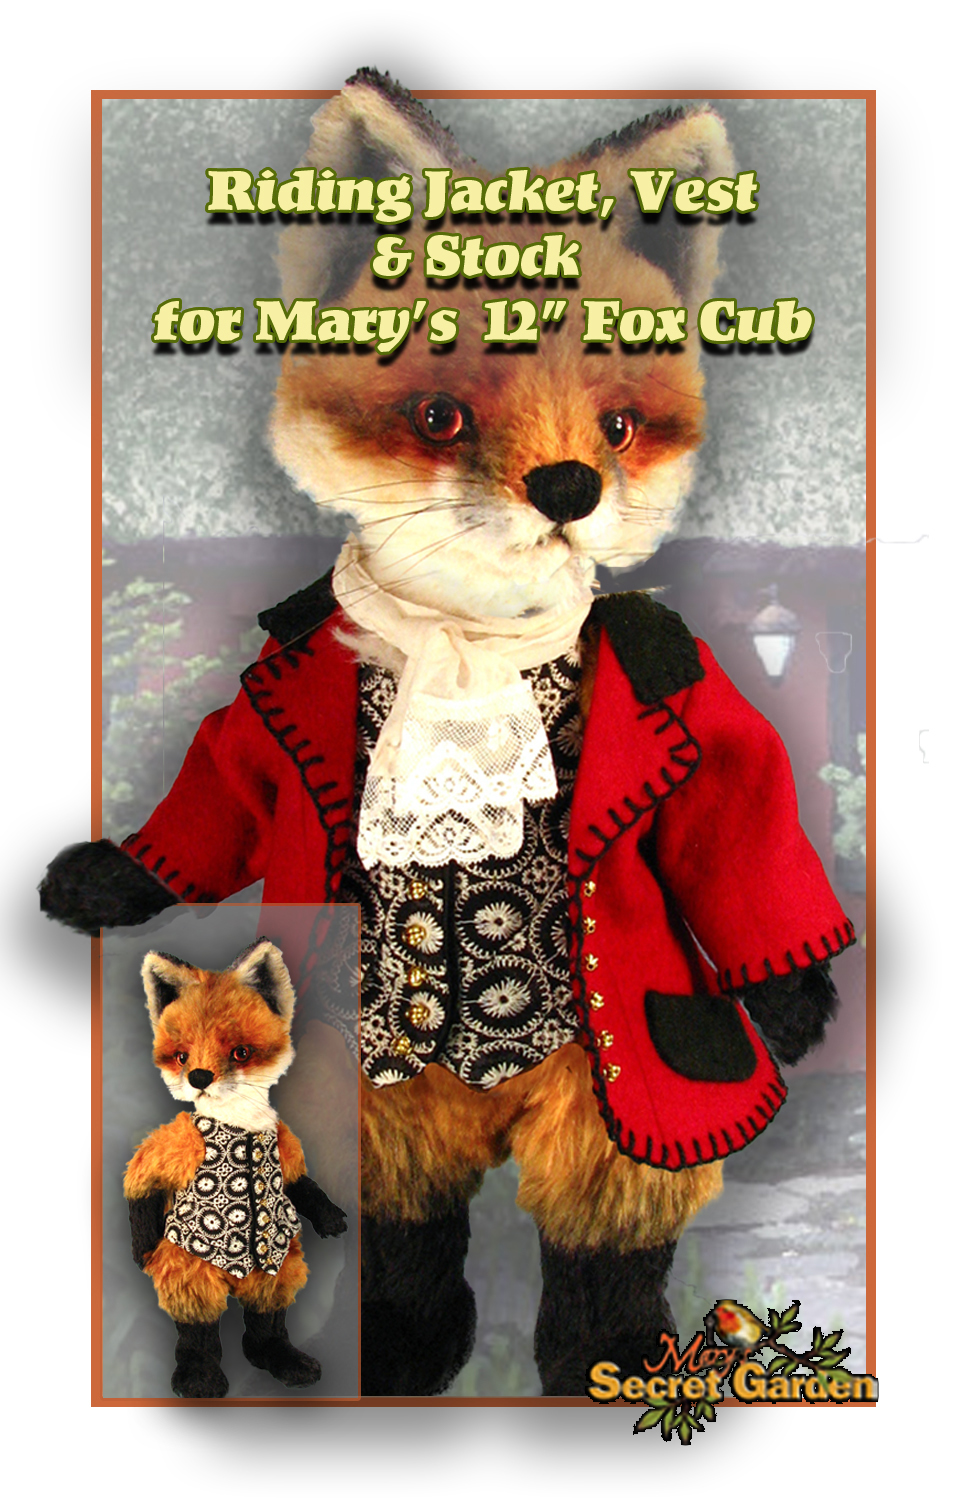 30 cm Fox clothing pattern, Doll Bear outfit, Fox Riding Jacket, Vest